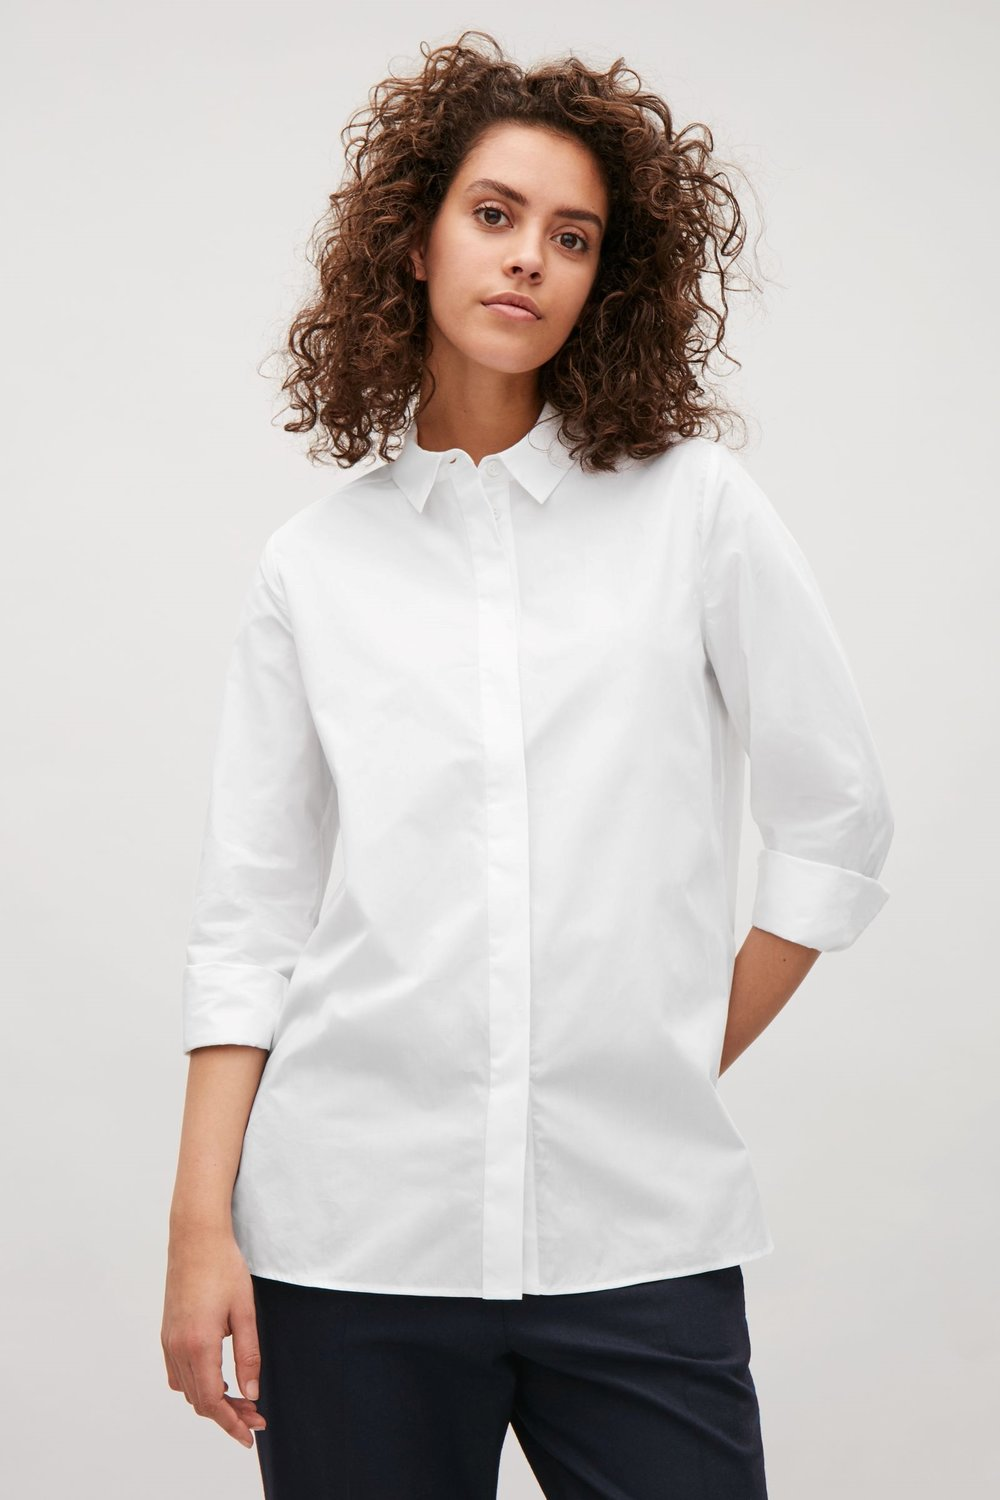 Cos   Tailored Cotton Shirt , £55